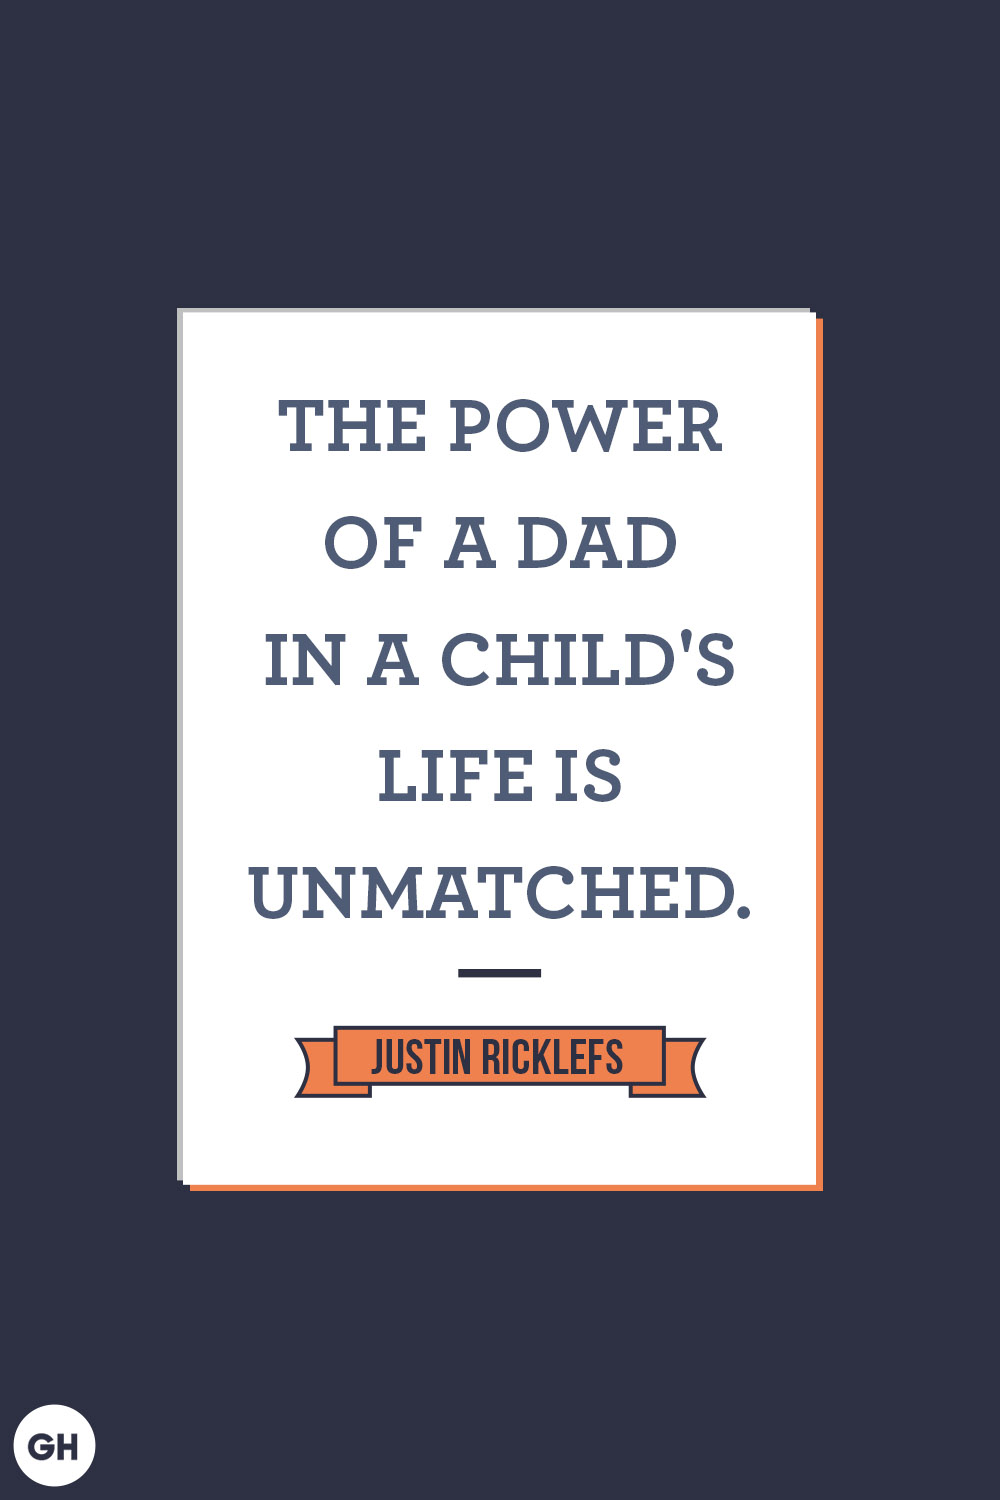 Quotes On Power 20 Best Father's Day Quotes  Dad Quotes He'll Love